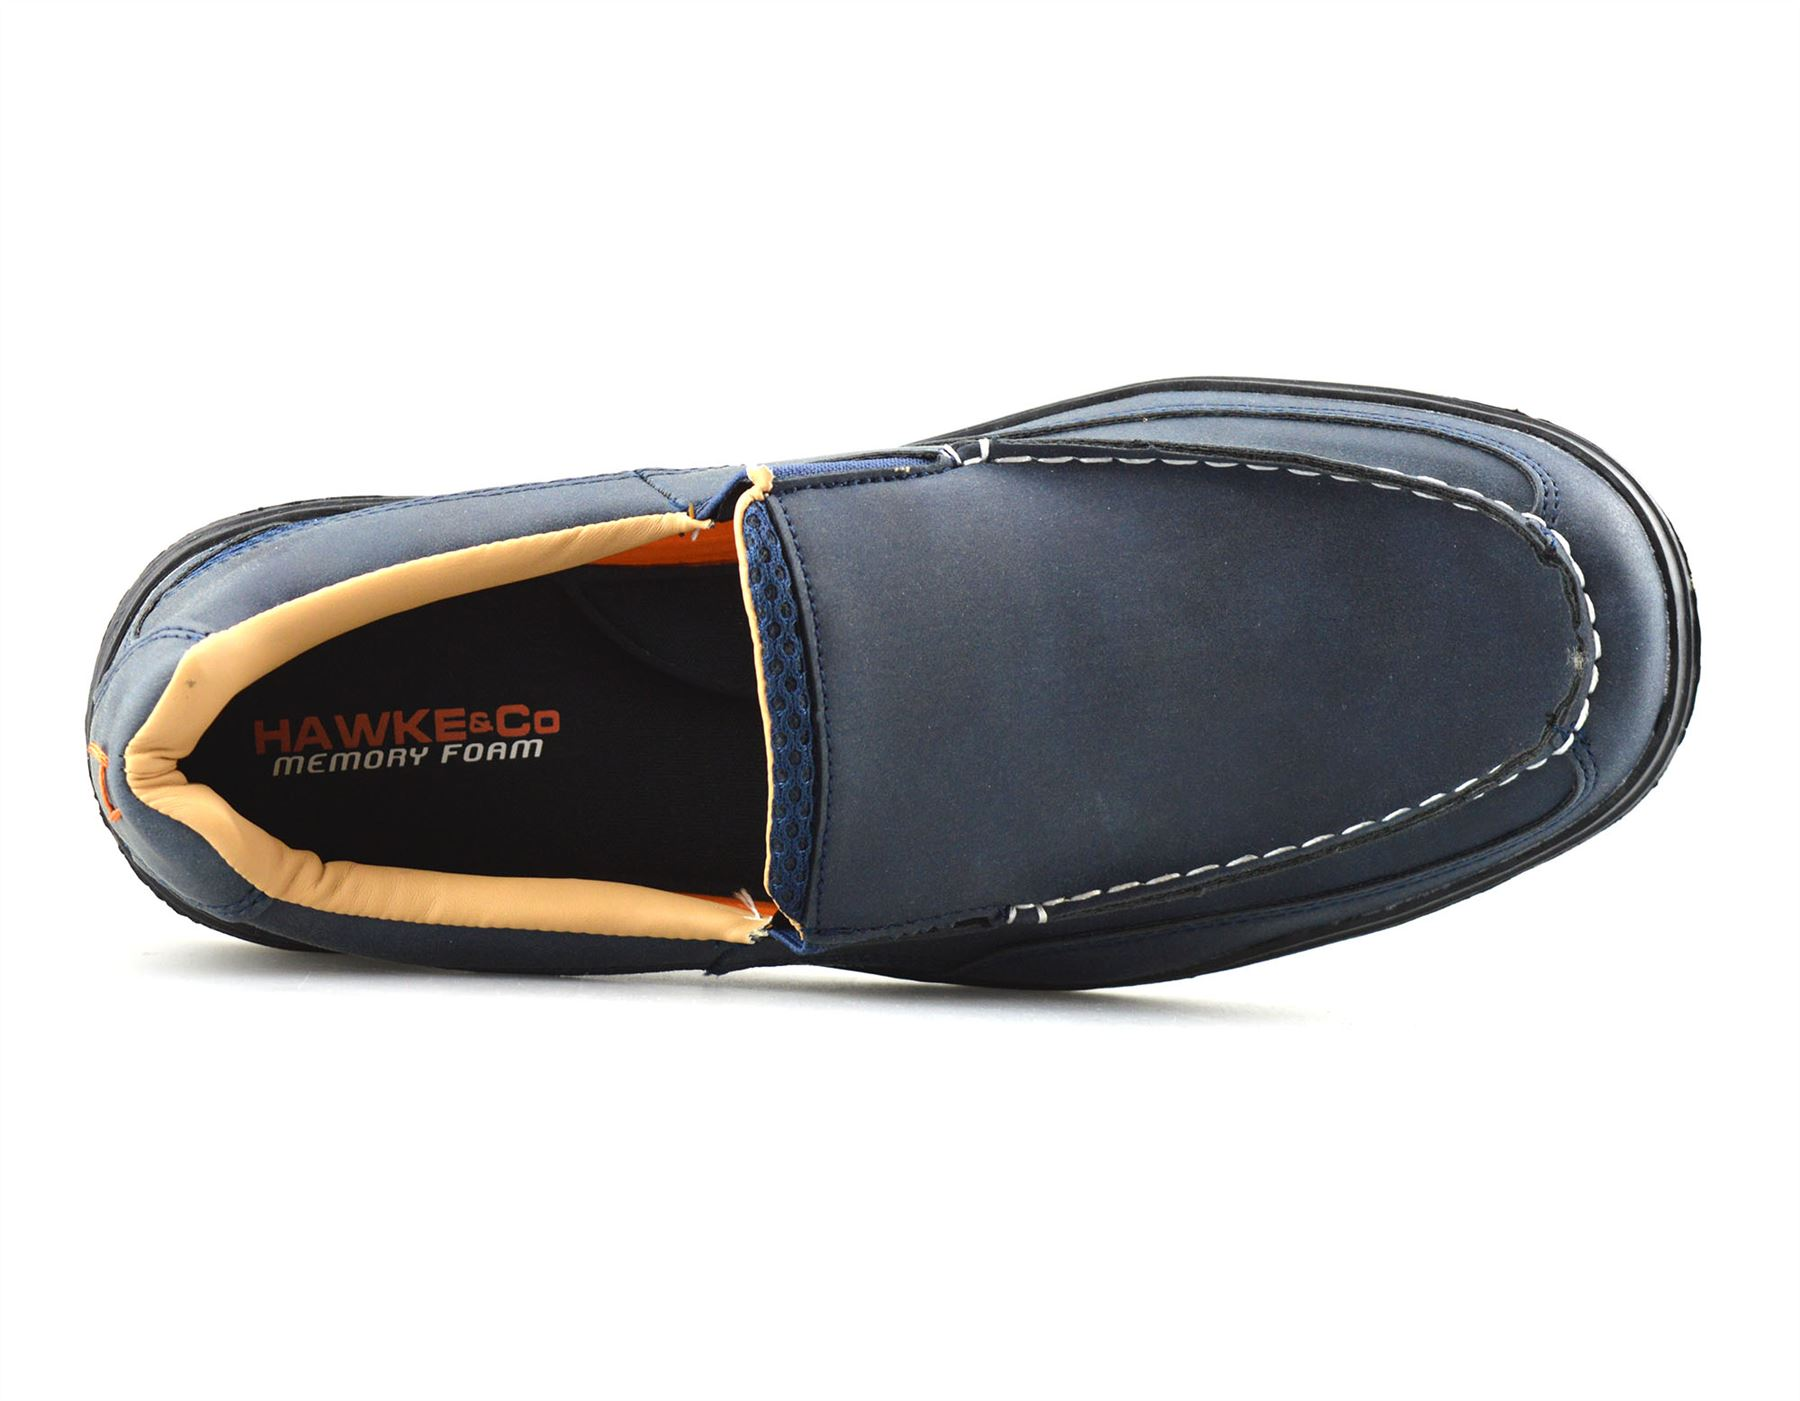 Mens-Casual-Memory-Foam-Slip-On-Walking-Loafers-Moccasin-Driving-Boat-Shoes-Size thumbnail 27